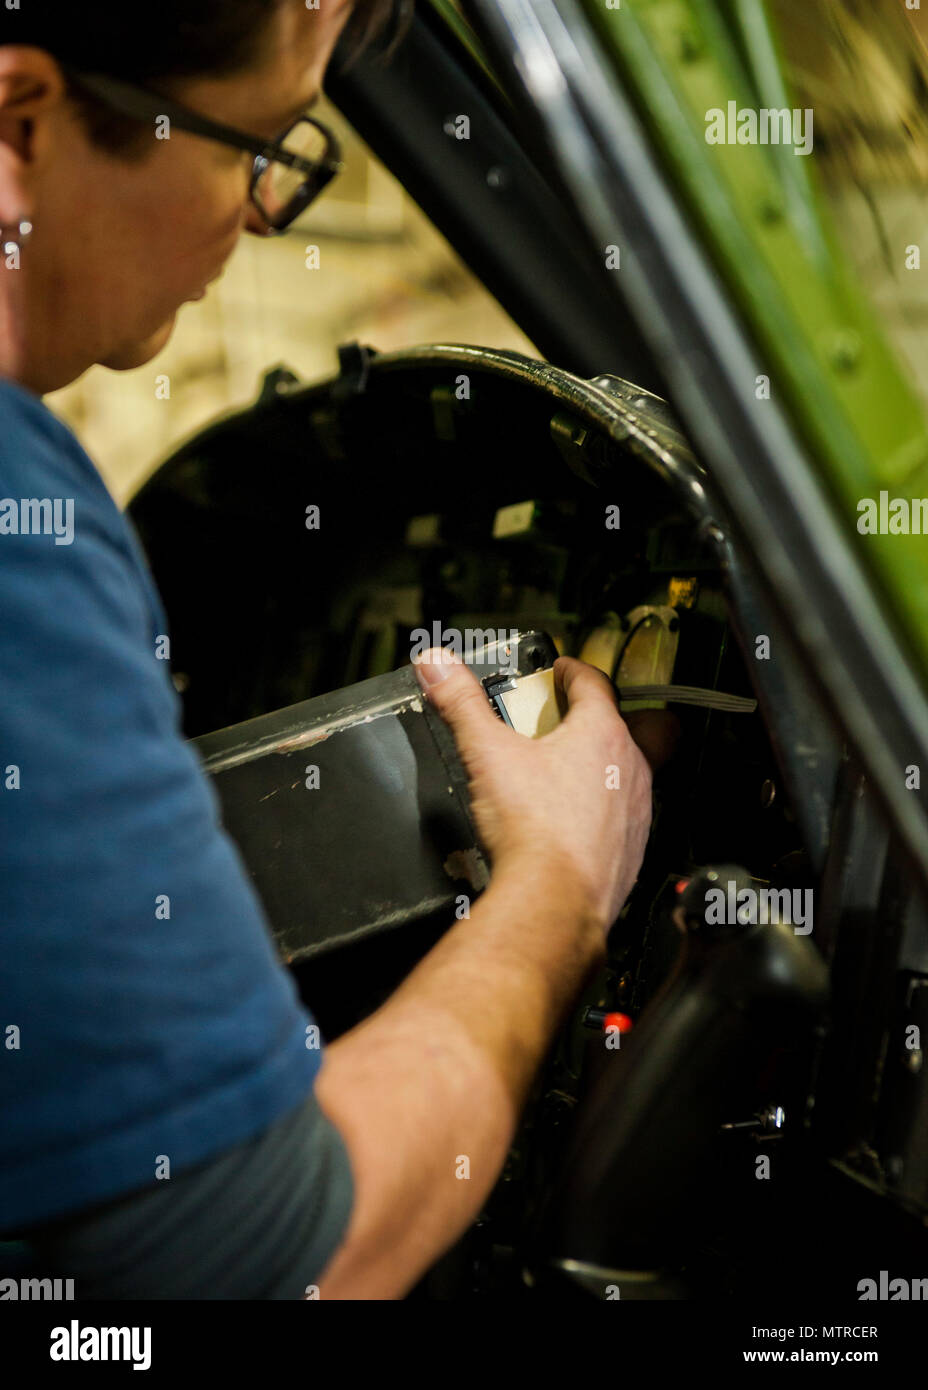 Kim Smith, 54th Helicopter Squadron UH-1N Iroquois mechanic, installs the attitude director indicator into a UH-1N Iroquois at Minot Air Force Base, N.D., Jan. 18, 2017. The ADI, aka gyro horizon, is an instrument that states the orientation of the helicopter to the horizon. (U.S. Air Force photo/Airman 1st Class J.T. Armstrong) - Stock Image